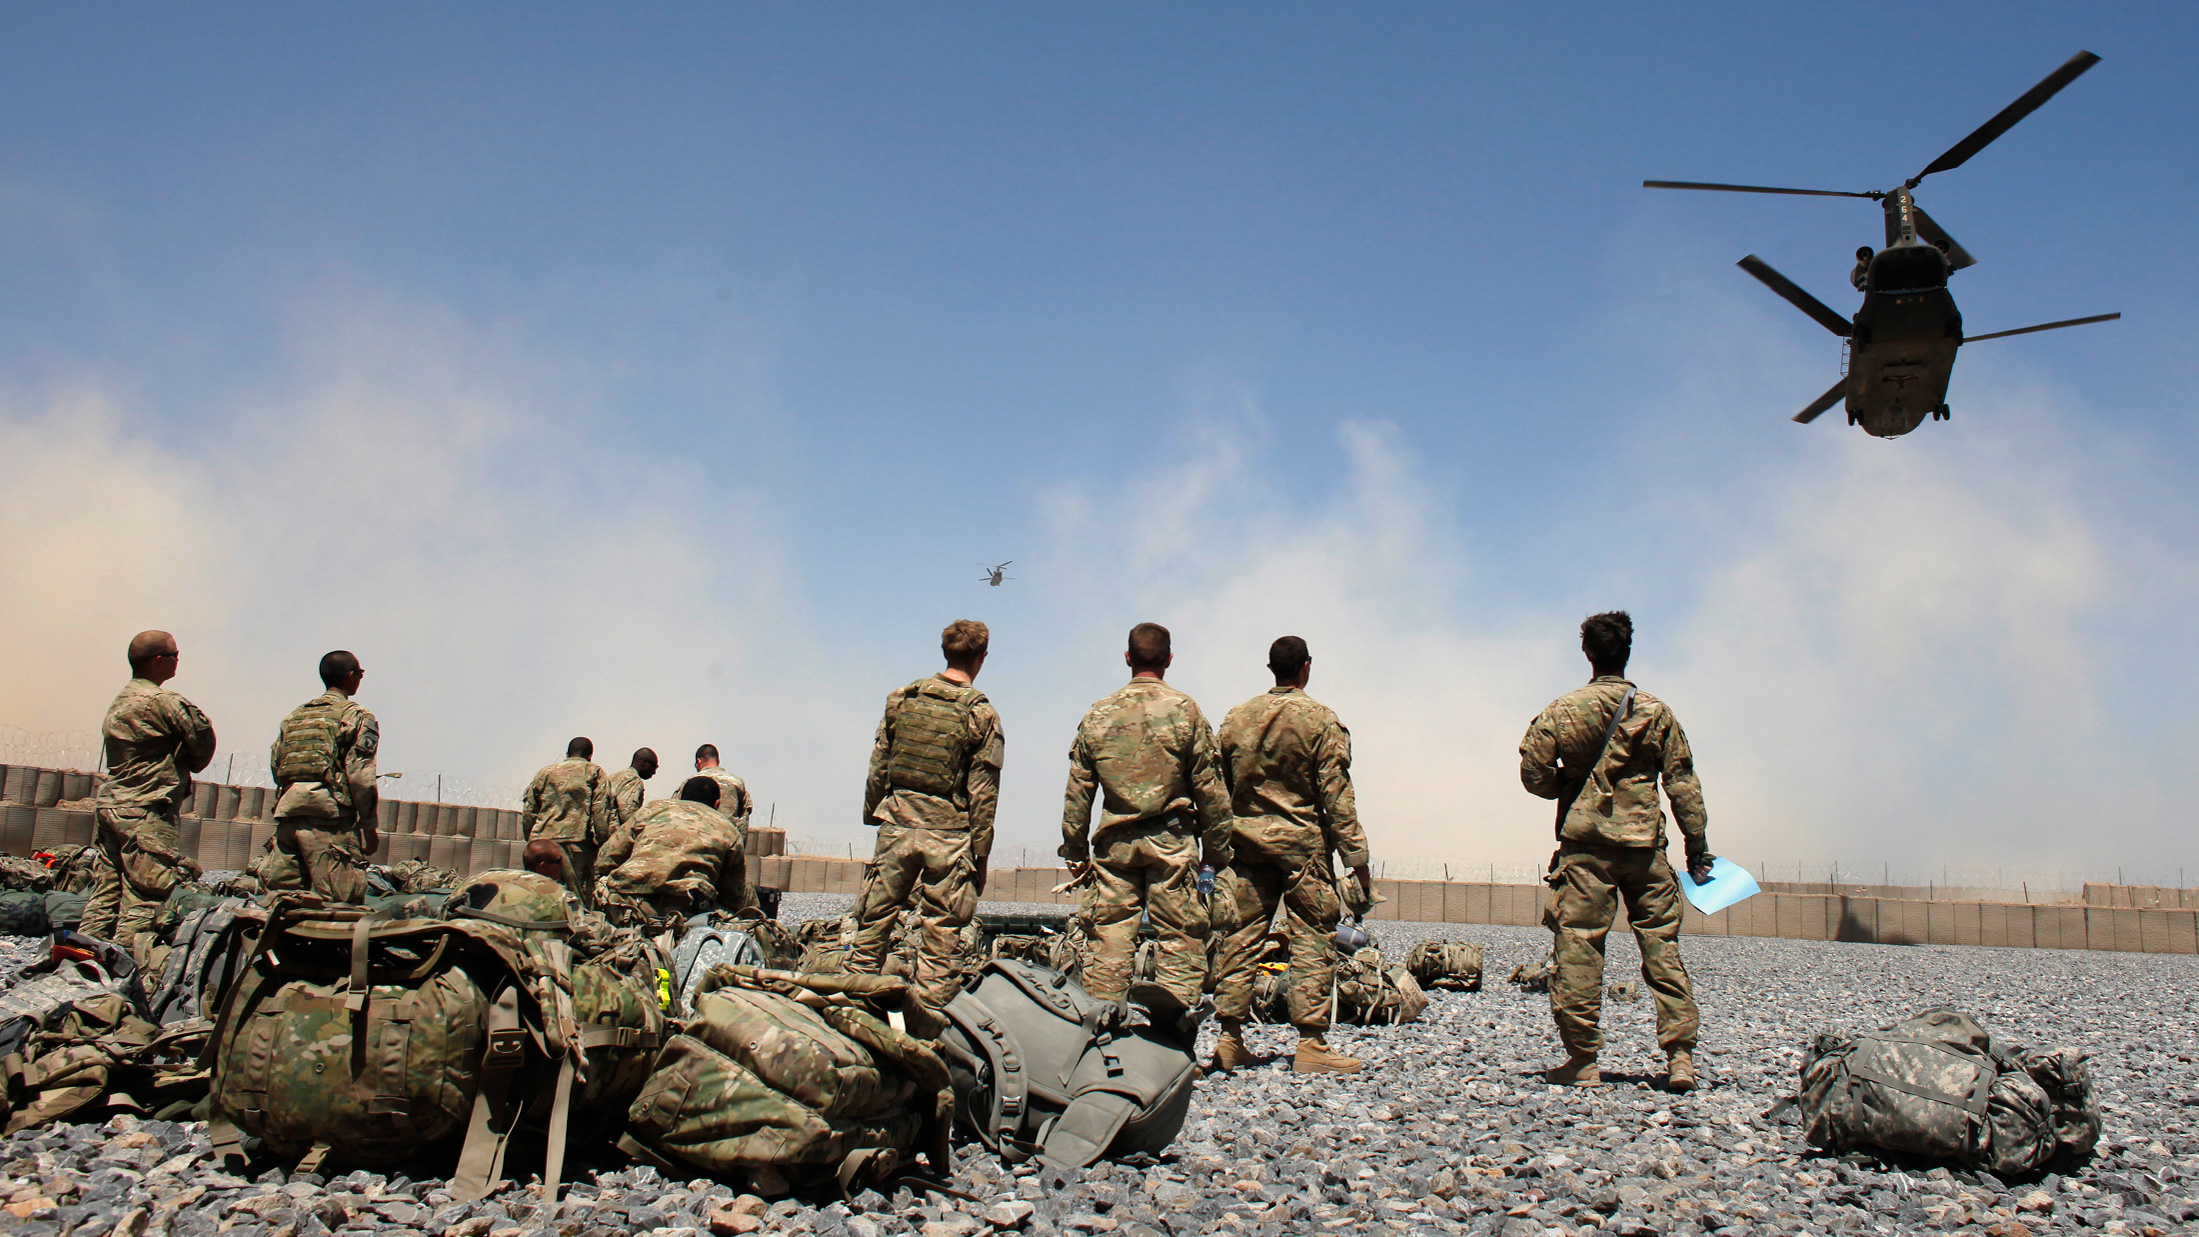 U.S. Army soldiers from the 1-320 Field Artillery Regiment, 101st Airborne Division, watch helicopters at Combat Outpost Terra Nova